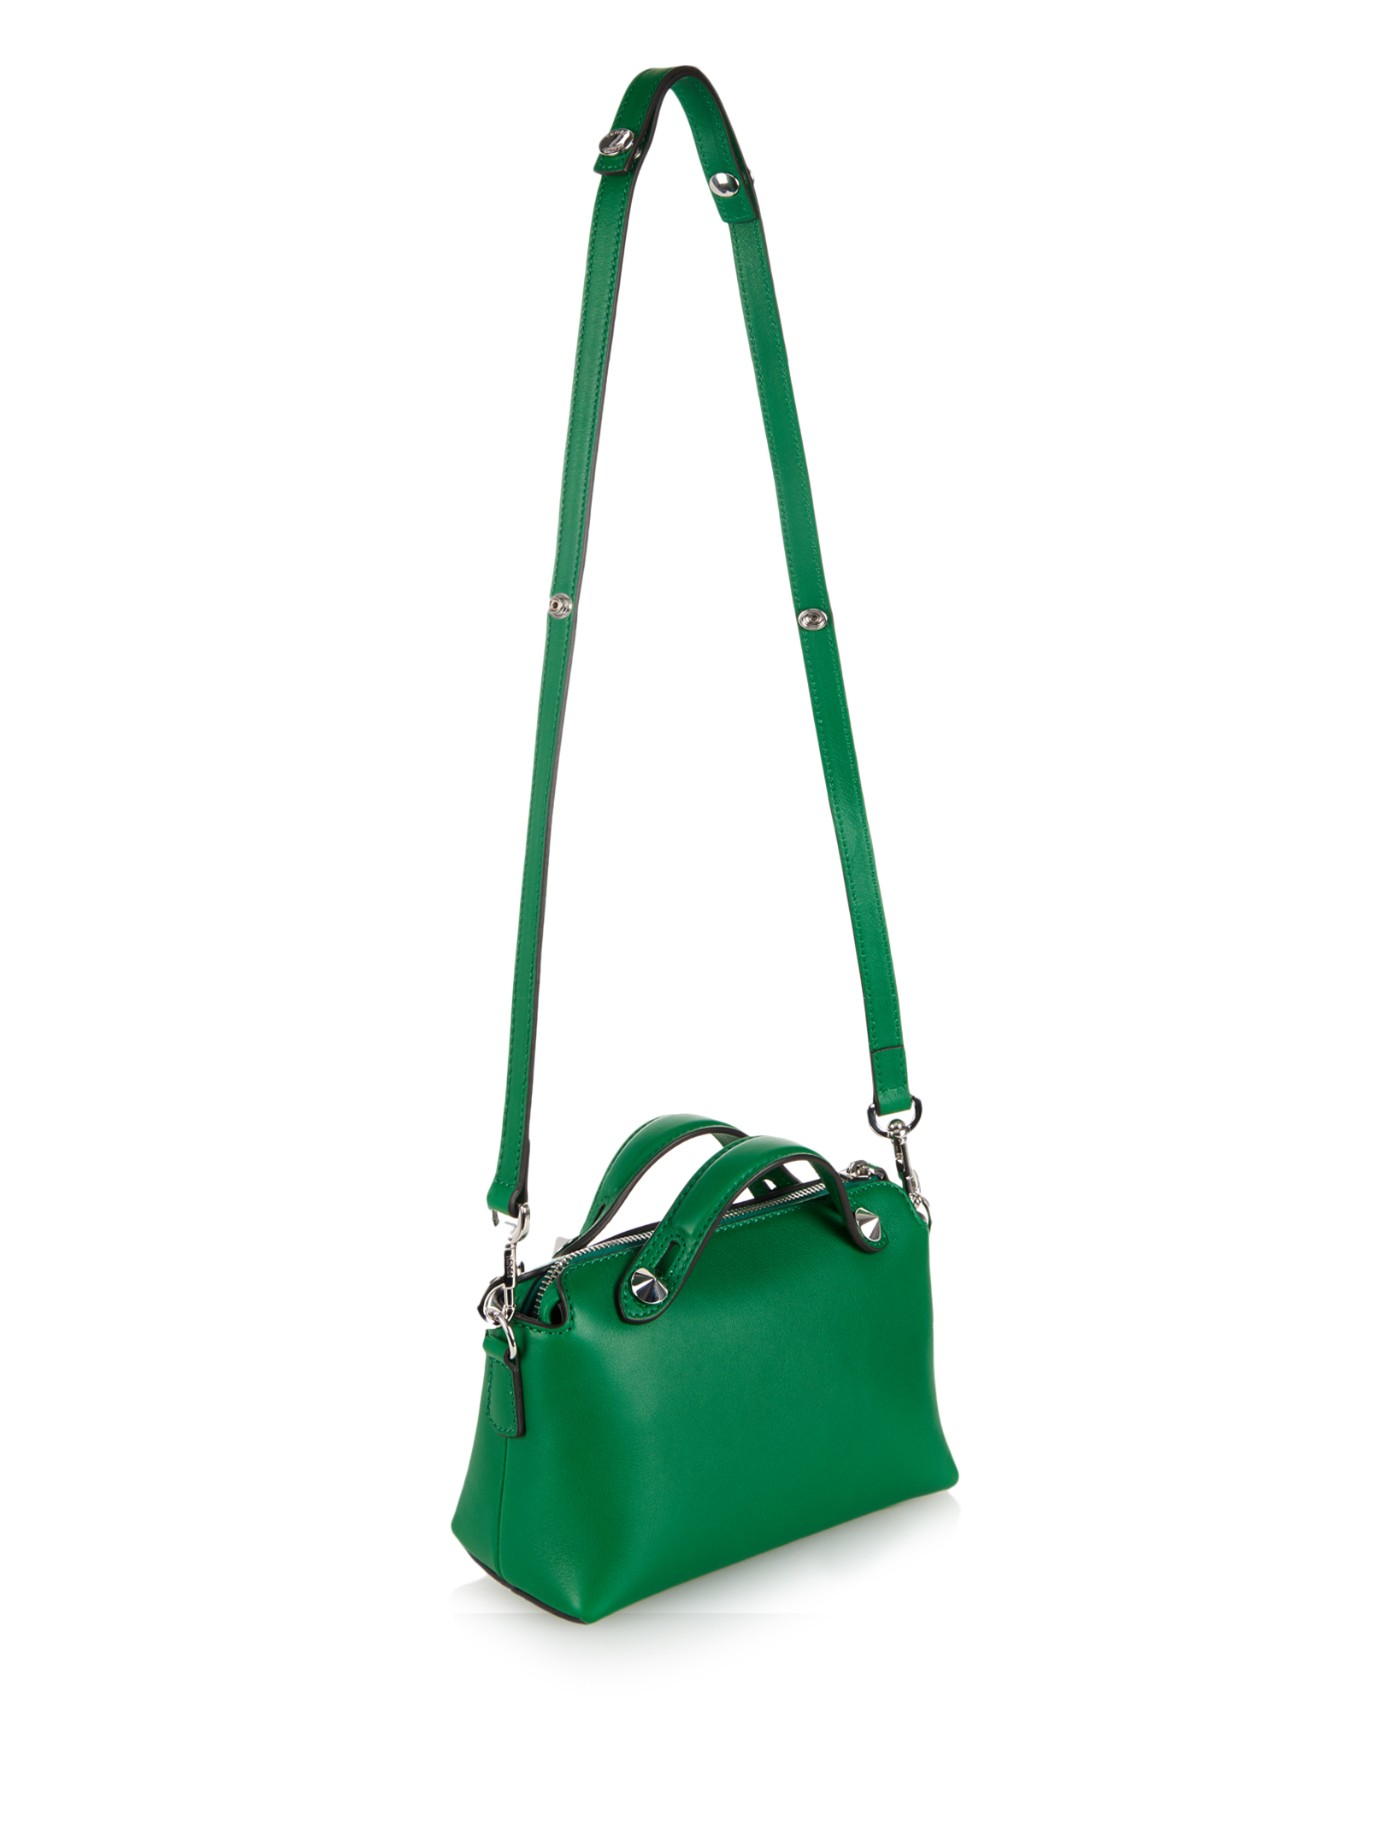 cc3a45010f ... low price lyst fendi by the way mini leather cross body bag in green  49348 b5835